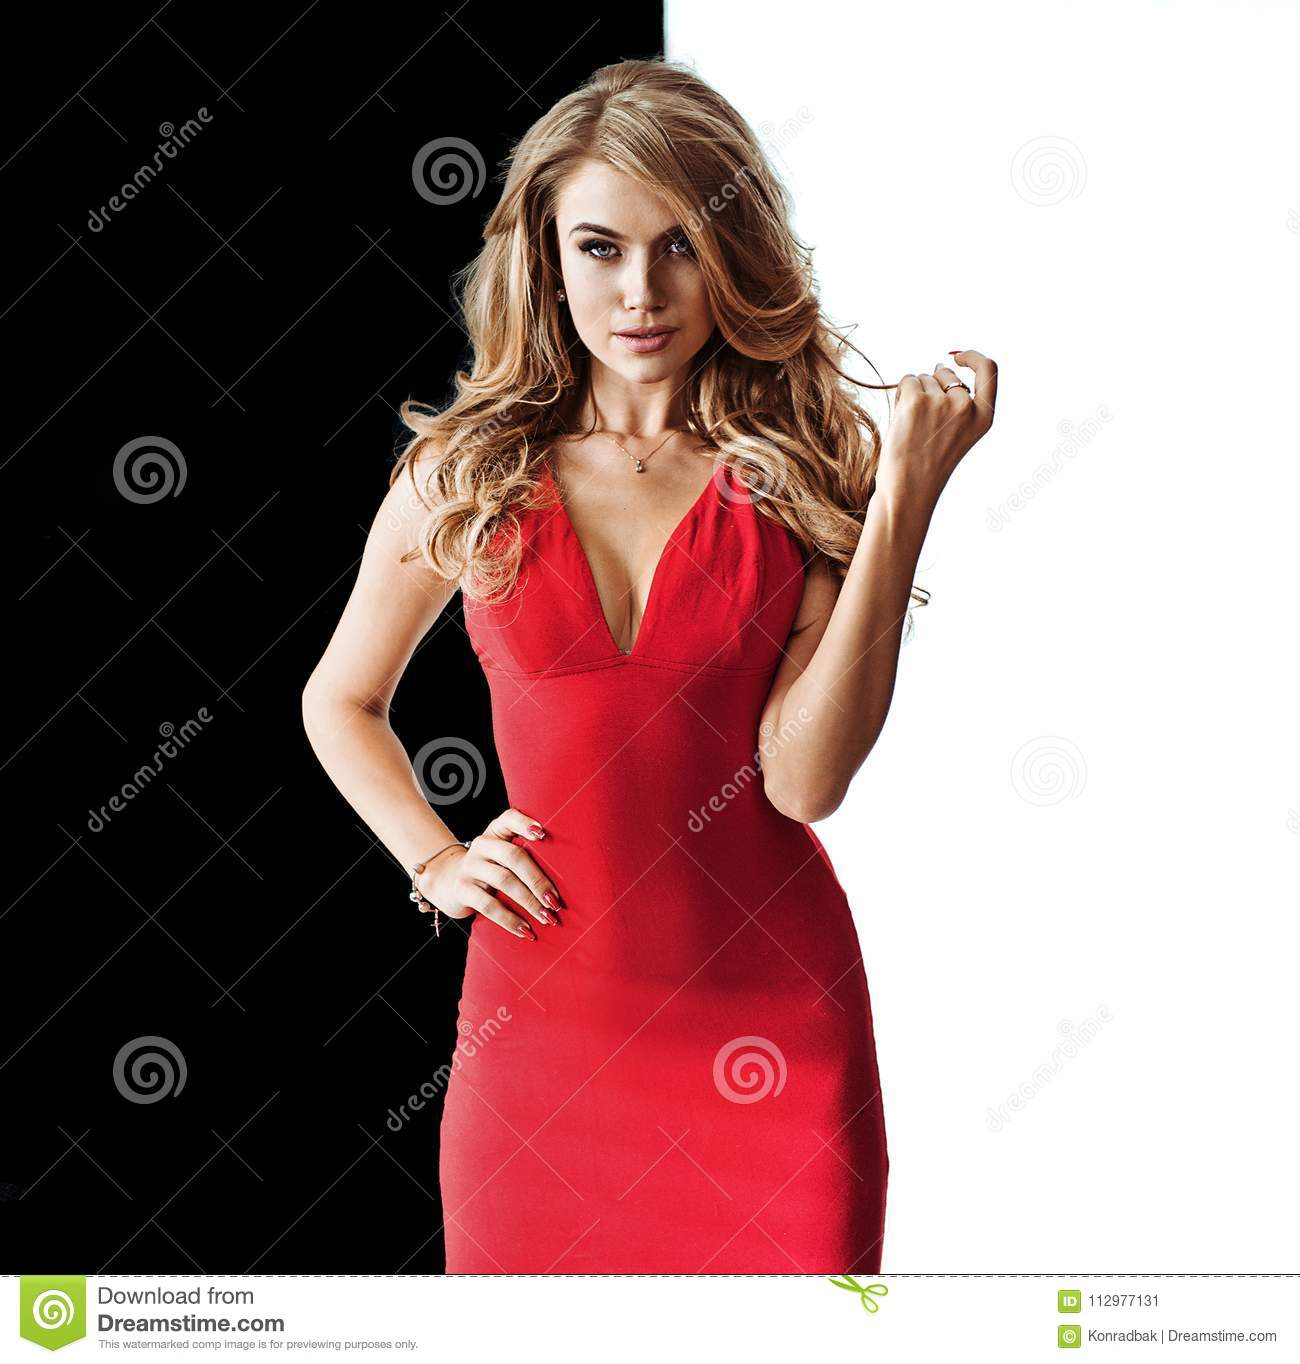 Pretty blond lady on the black-white background